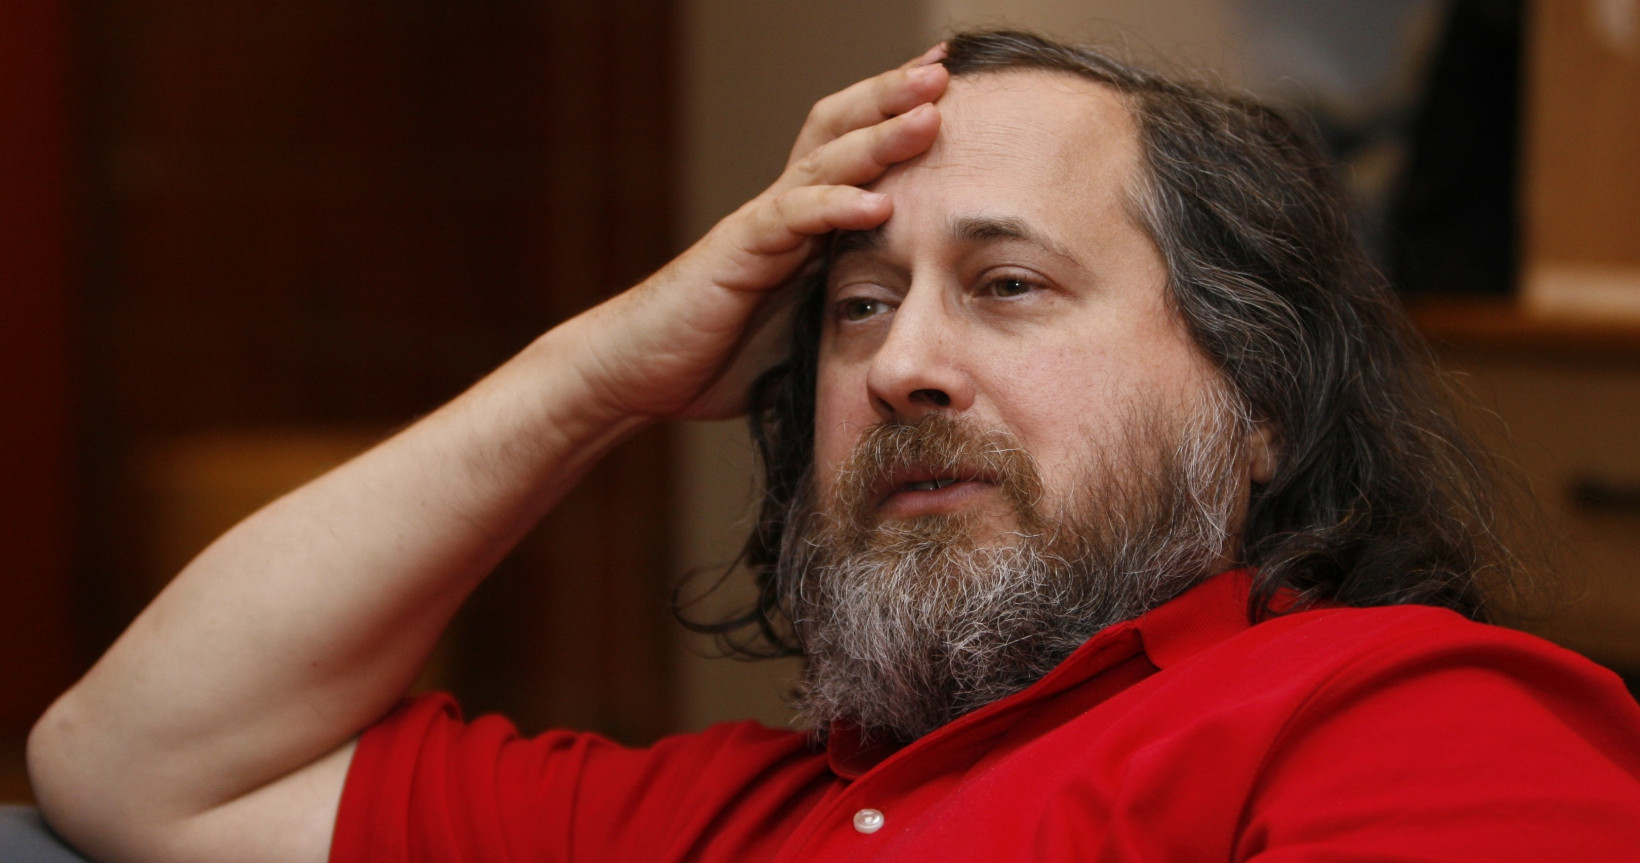 Free software icon Richard Stallman has some idiotic views about pedophilia